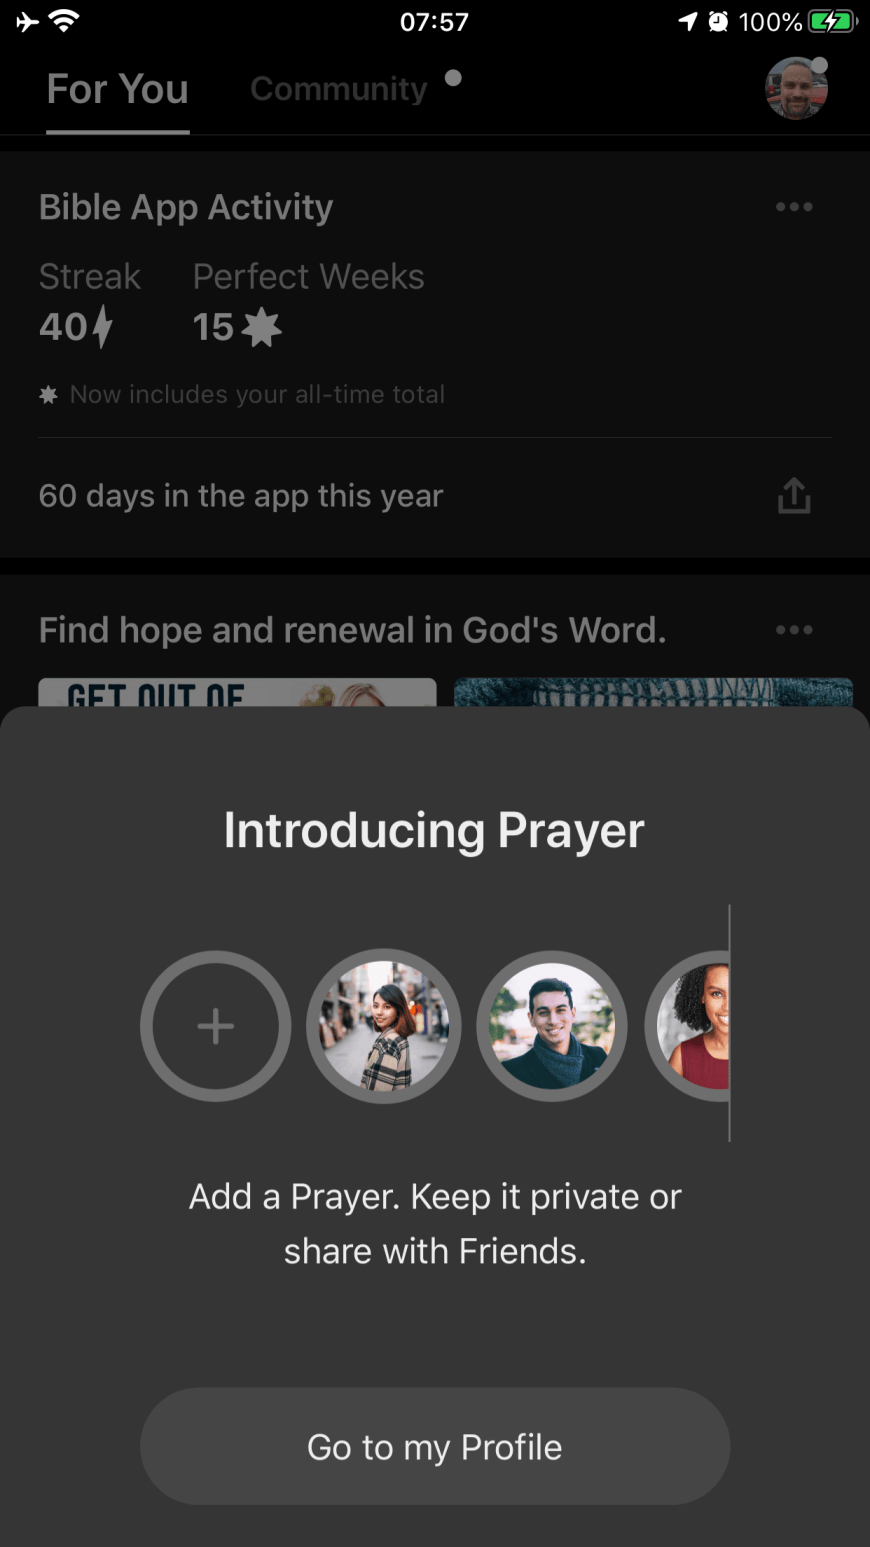 YouVersion Adds Prayer Feature To Their Bible App - YouVersion Community creates 1 million prayers during first week of new Bible App Prayer feature. #YouVersion #Prayer